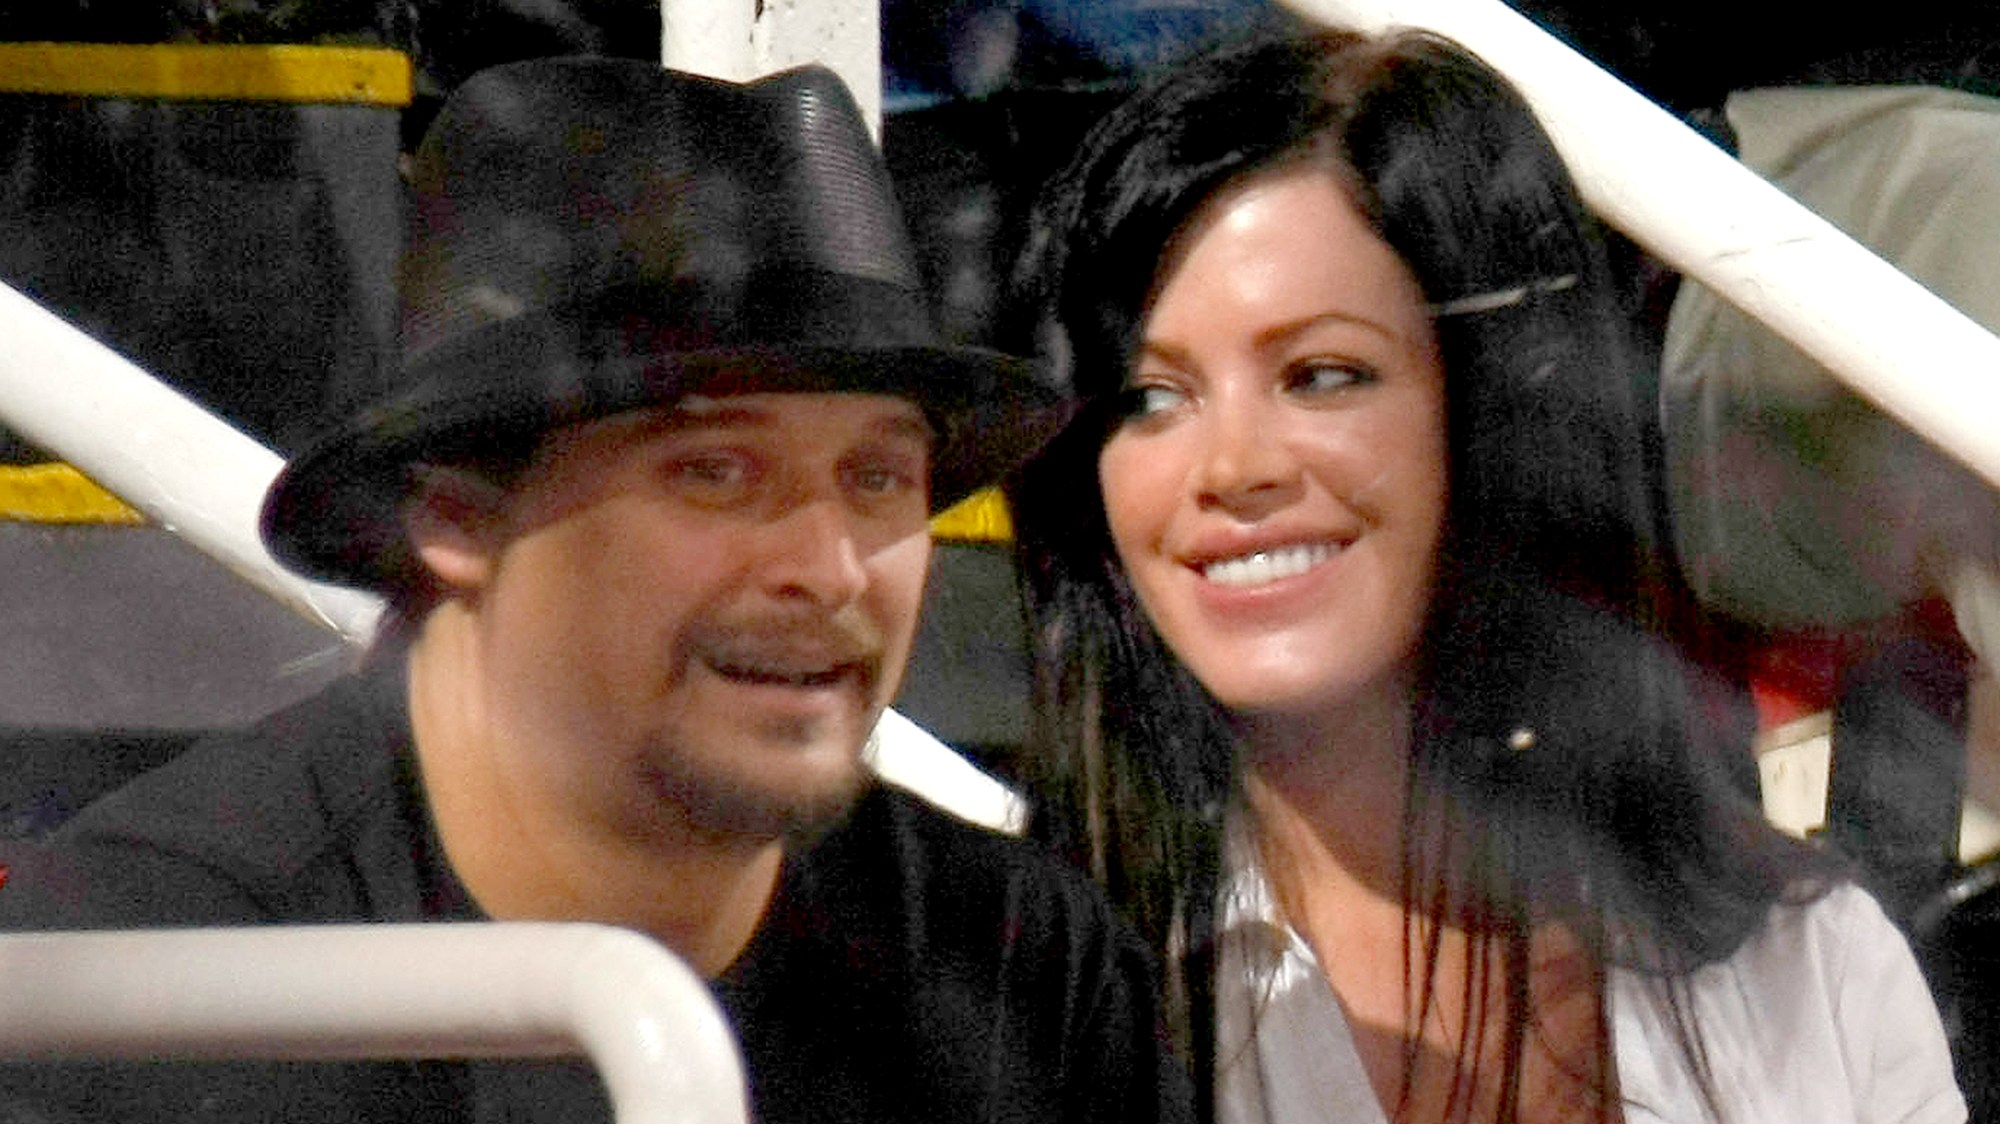 kid-rock-aubrey-f23e7d5f-b998-430e-aca6-a7858be70623